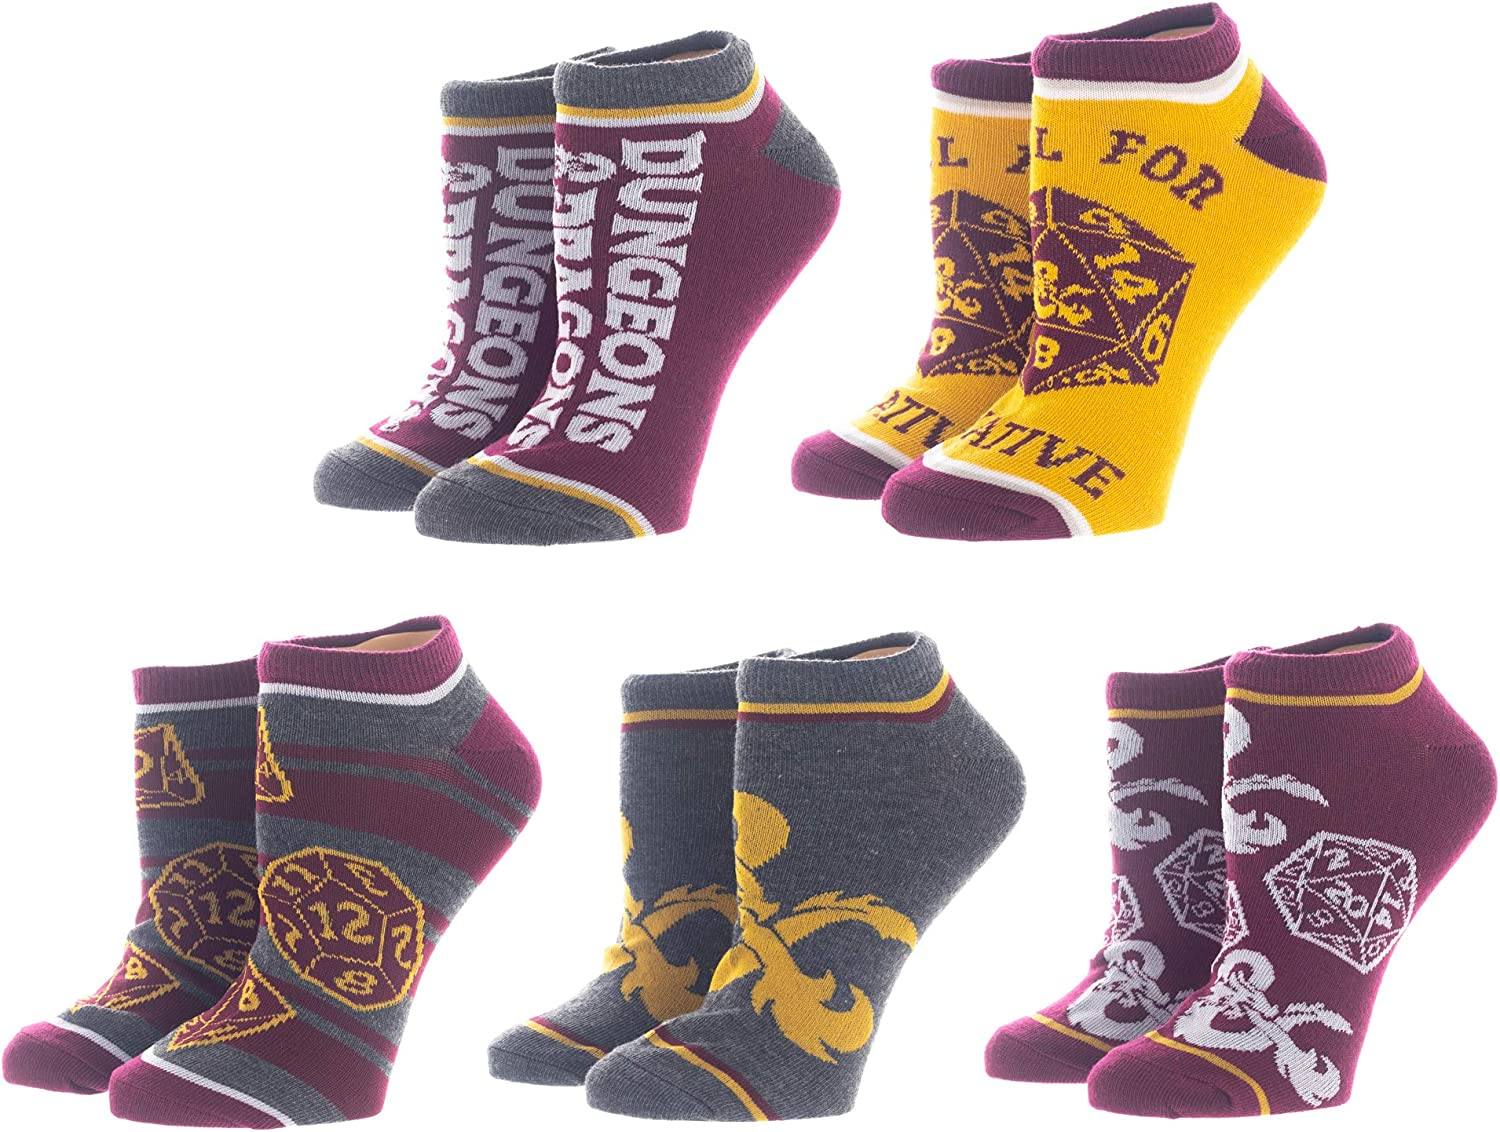 D&D Dungeons and Dragons Classic Jrs Ankle 5 Sock Pack